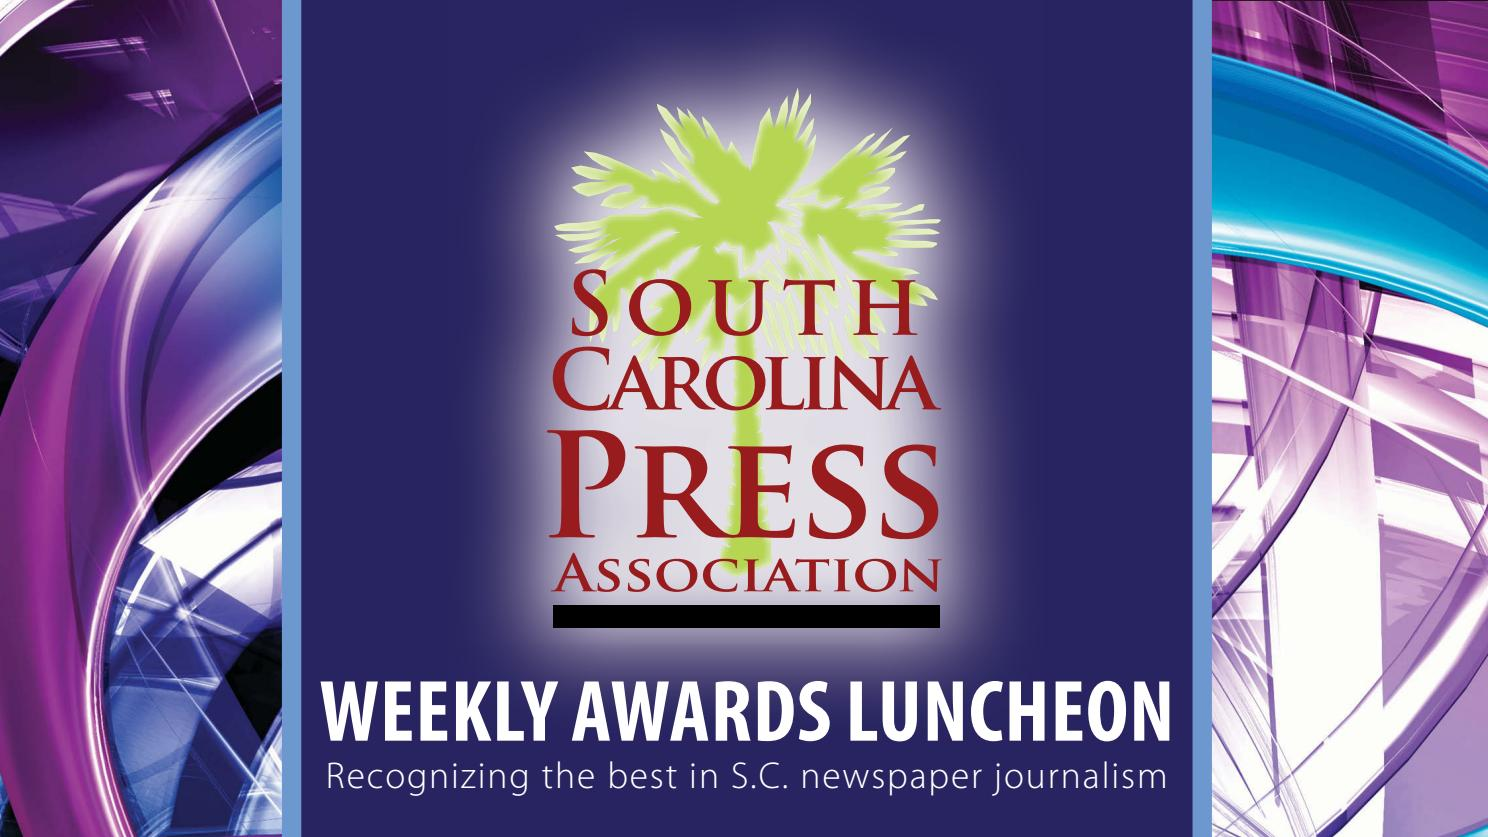 One man s junk cherokee county sc - 2017 Weekly Awards Luncheon Digital Presentation By S C Press Association Issuu